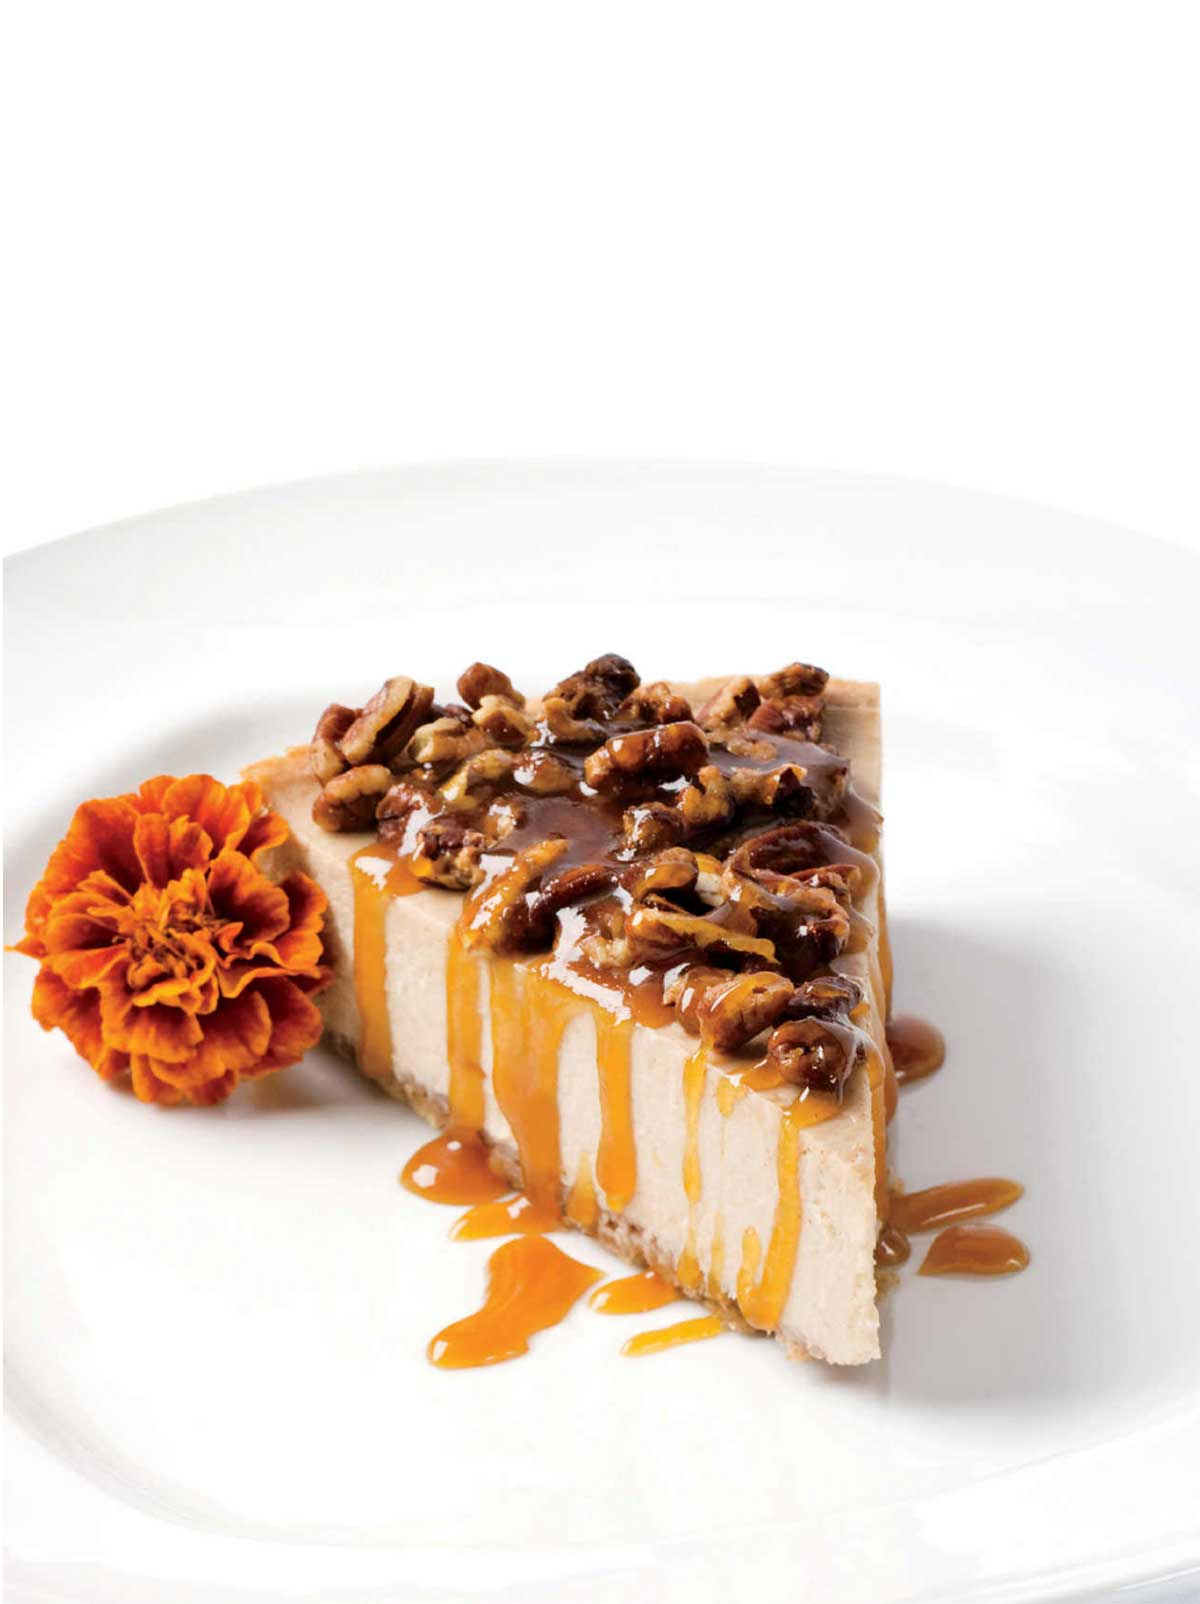 A slice of banana rum cheesecake with maple rum sauce and pecan pieces on top and a marigold beside the cake.